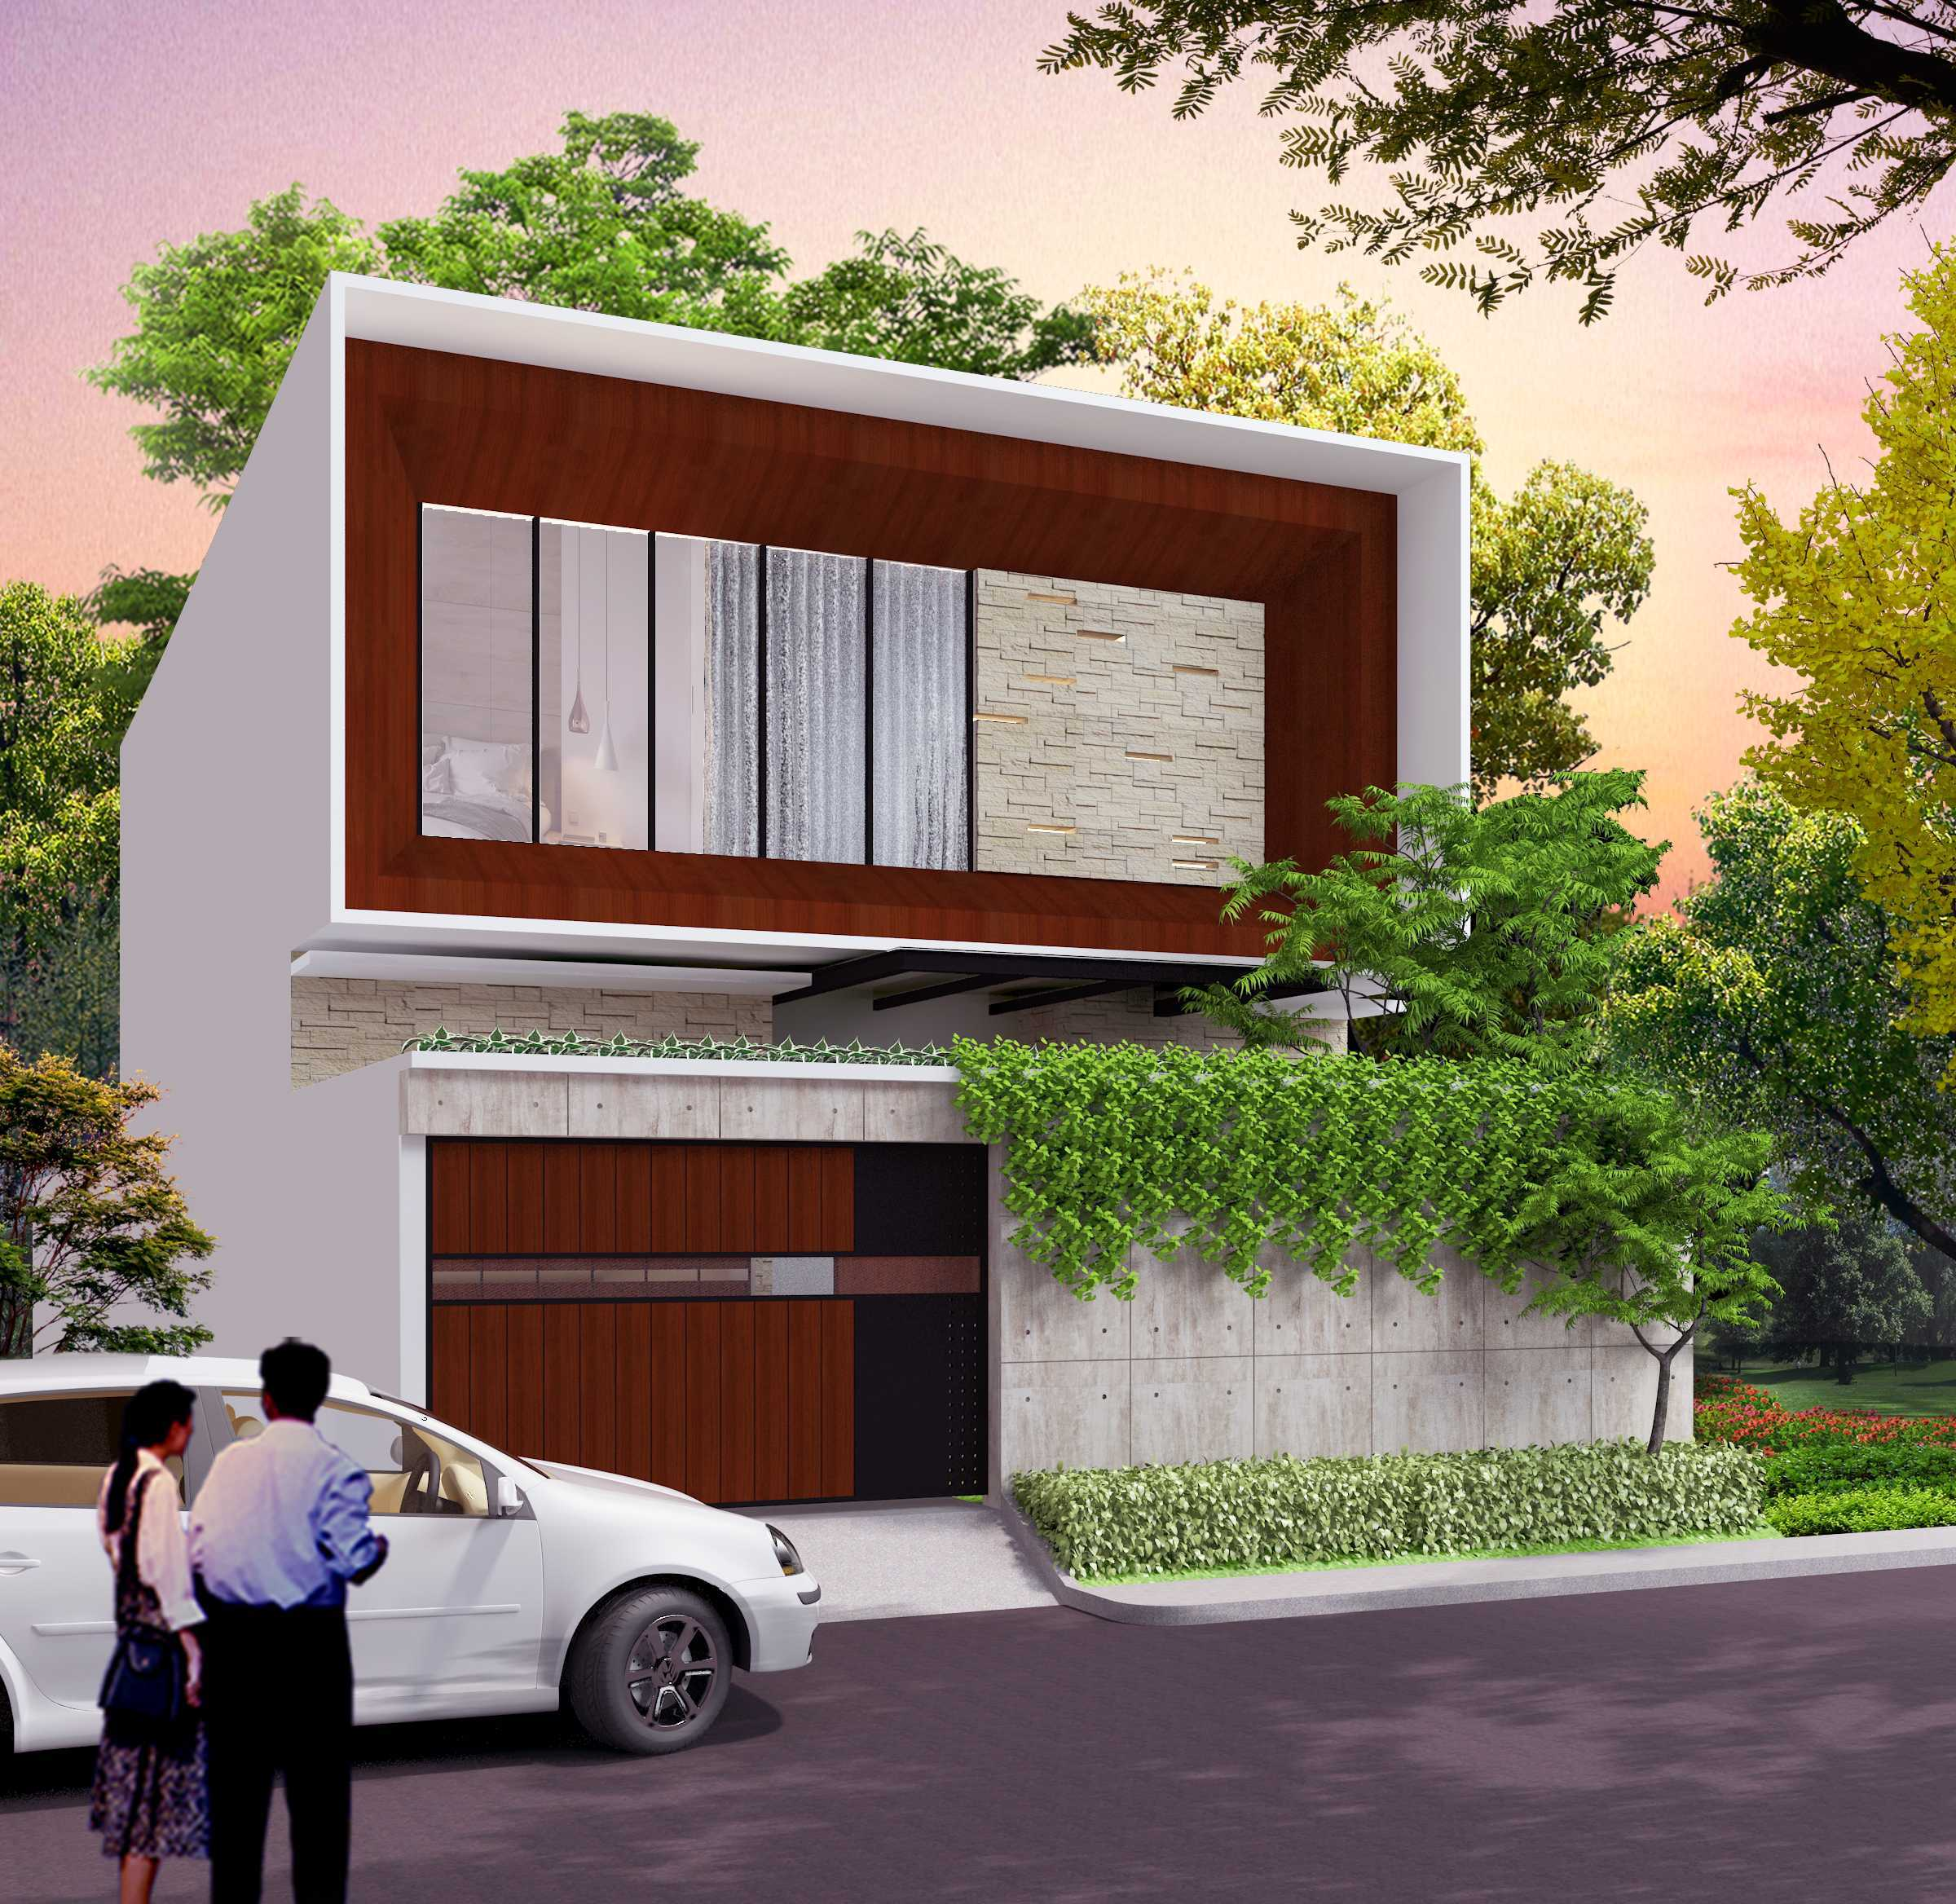 Alima Studio Mr. A's House Jakarta, Indonesia Jakarta, Indonesia Front View Kontemporer  27827